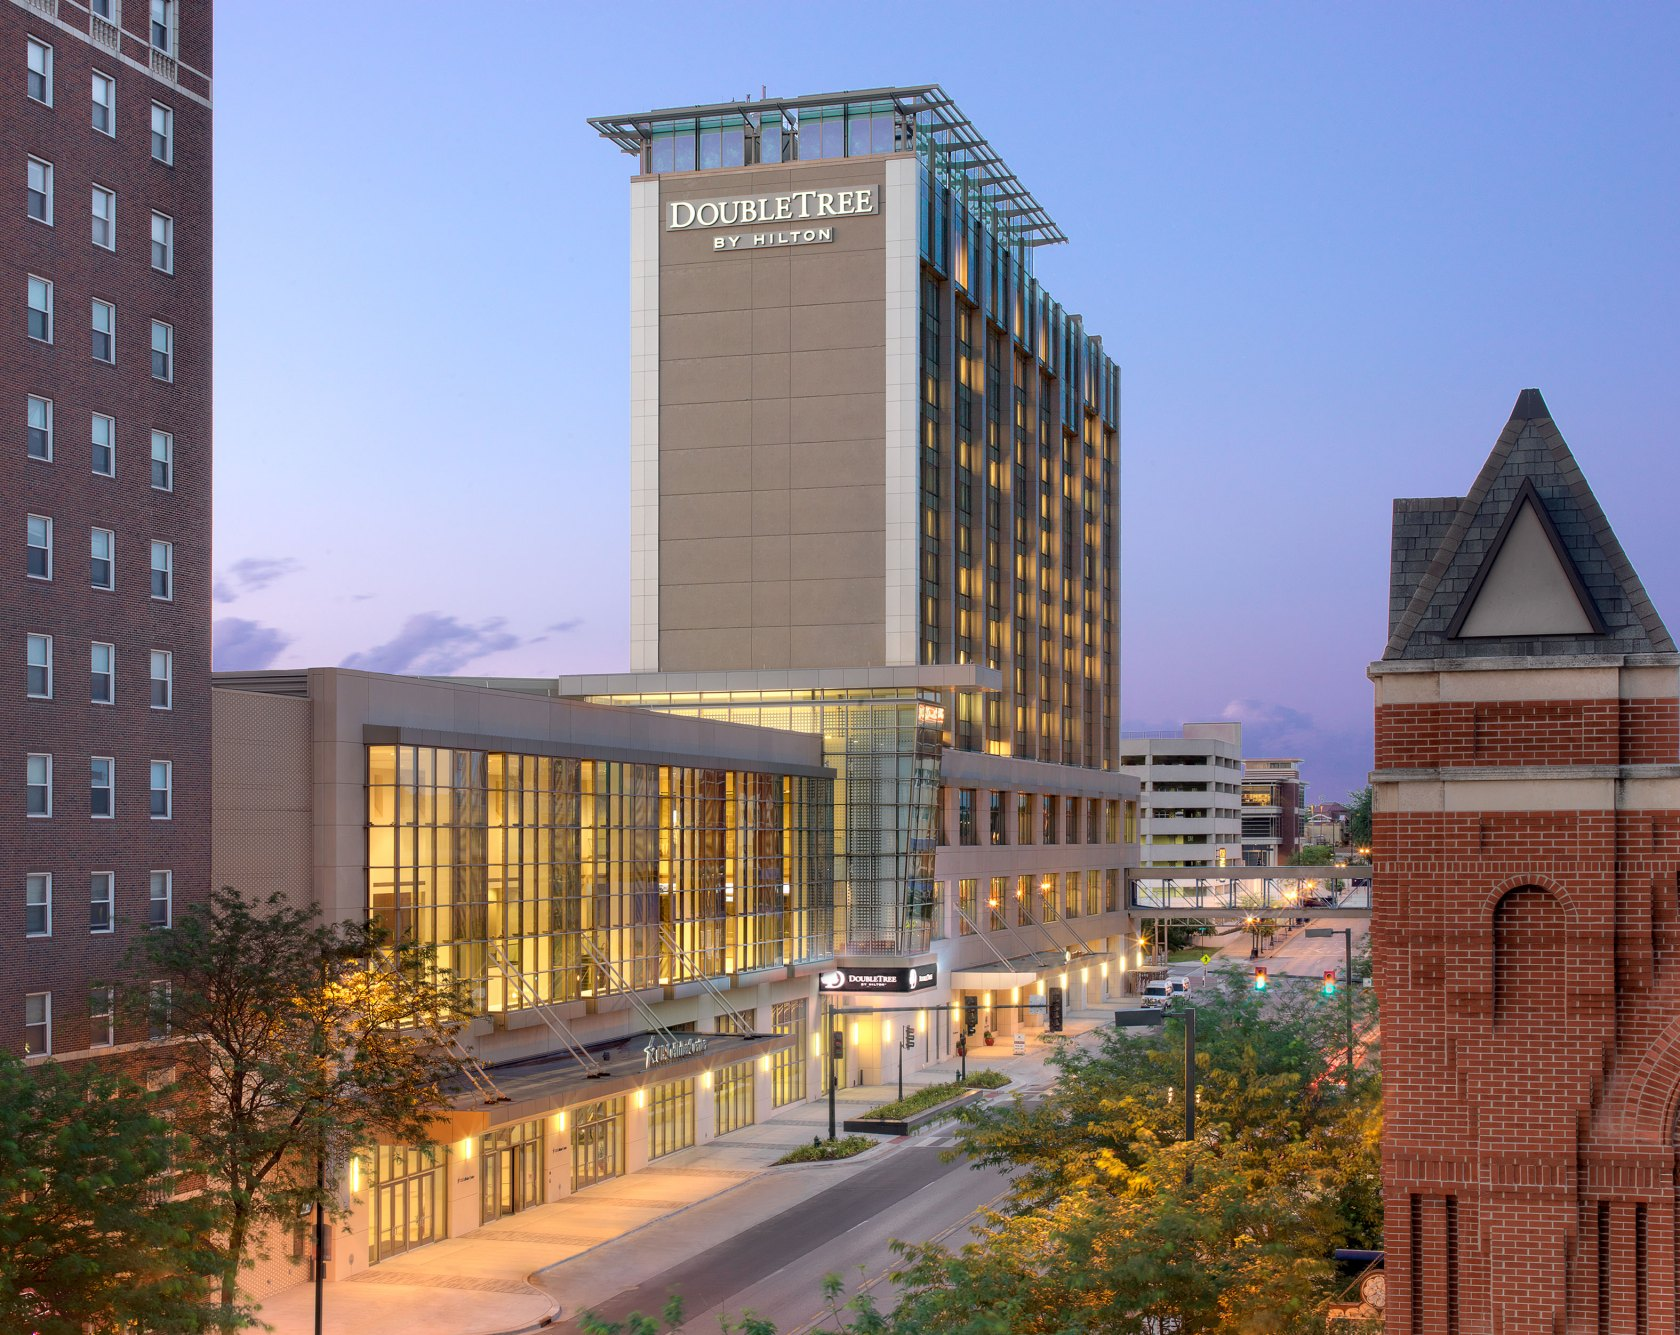 DoubleTree by Hilton Cedar Rapids Iowa Images